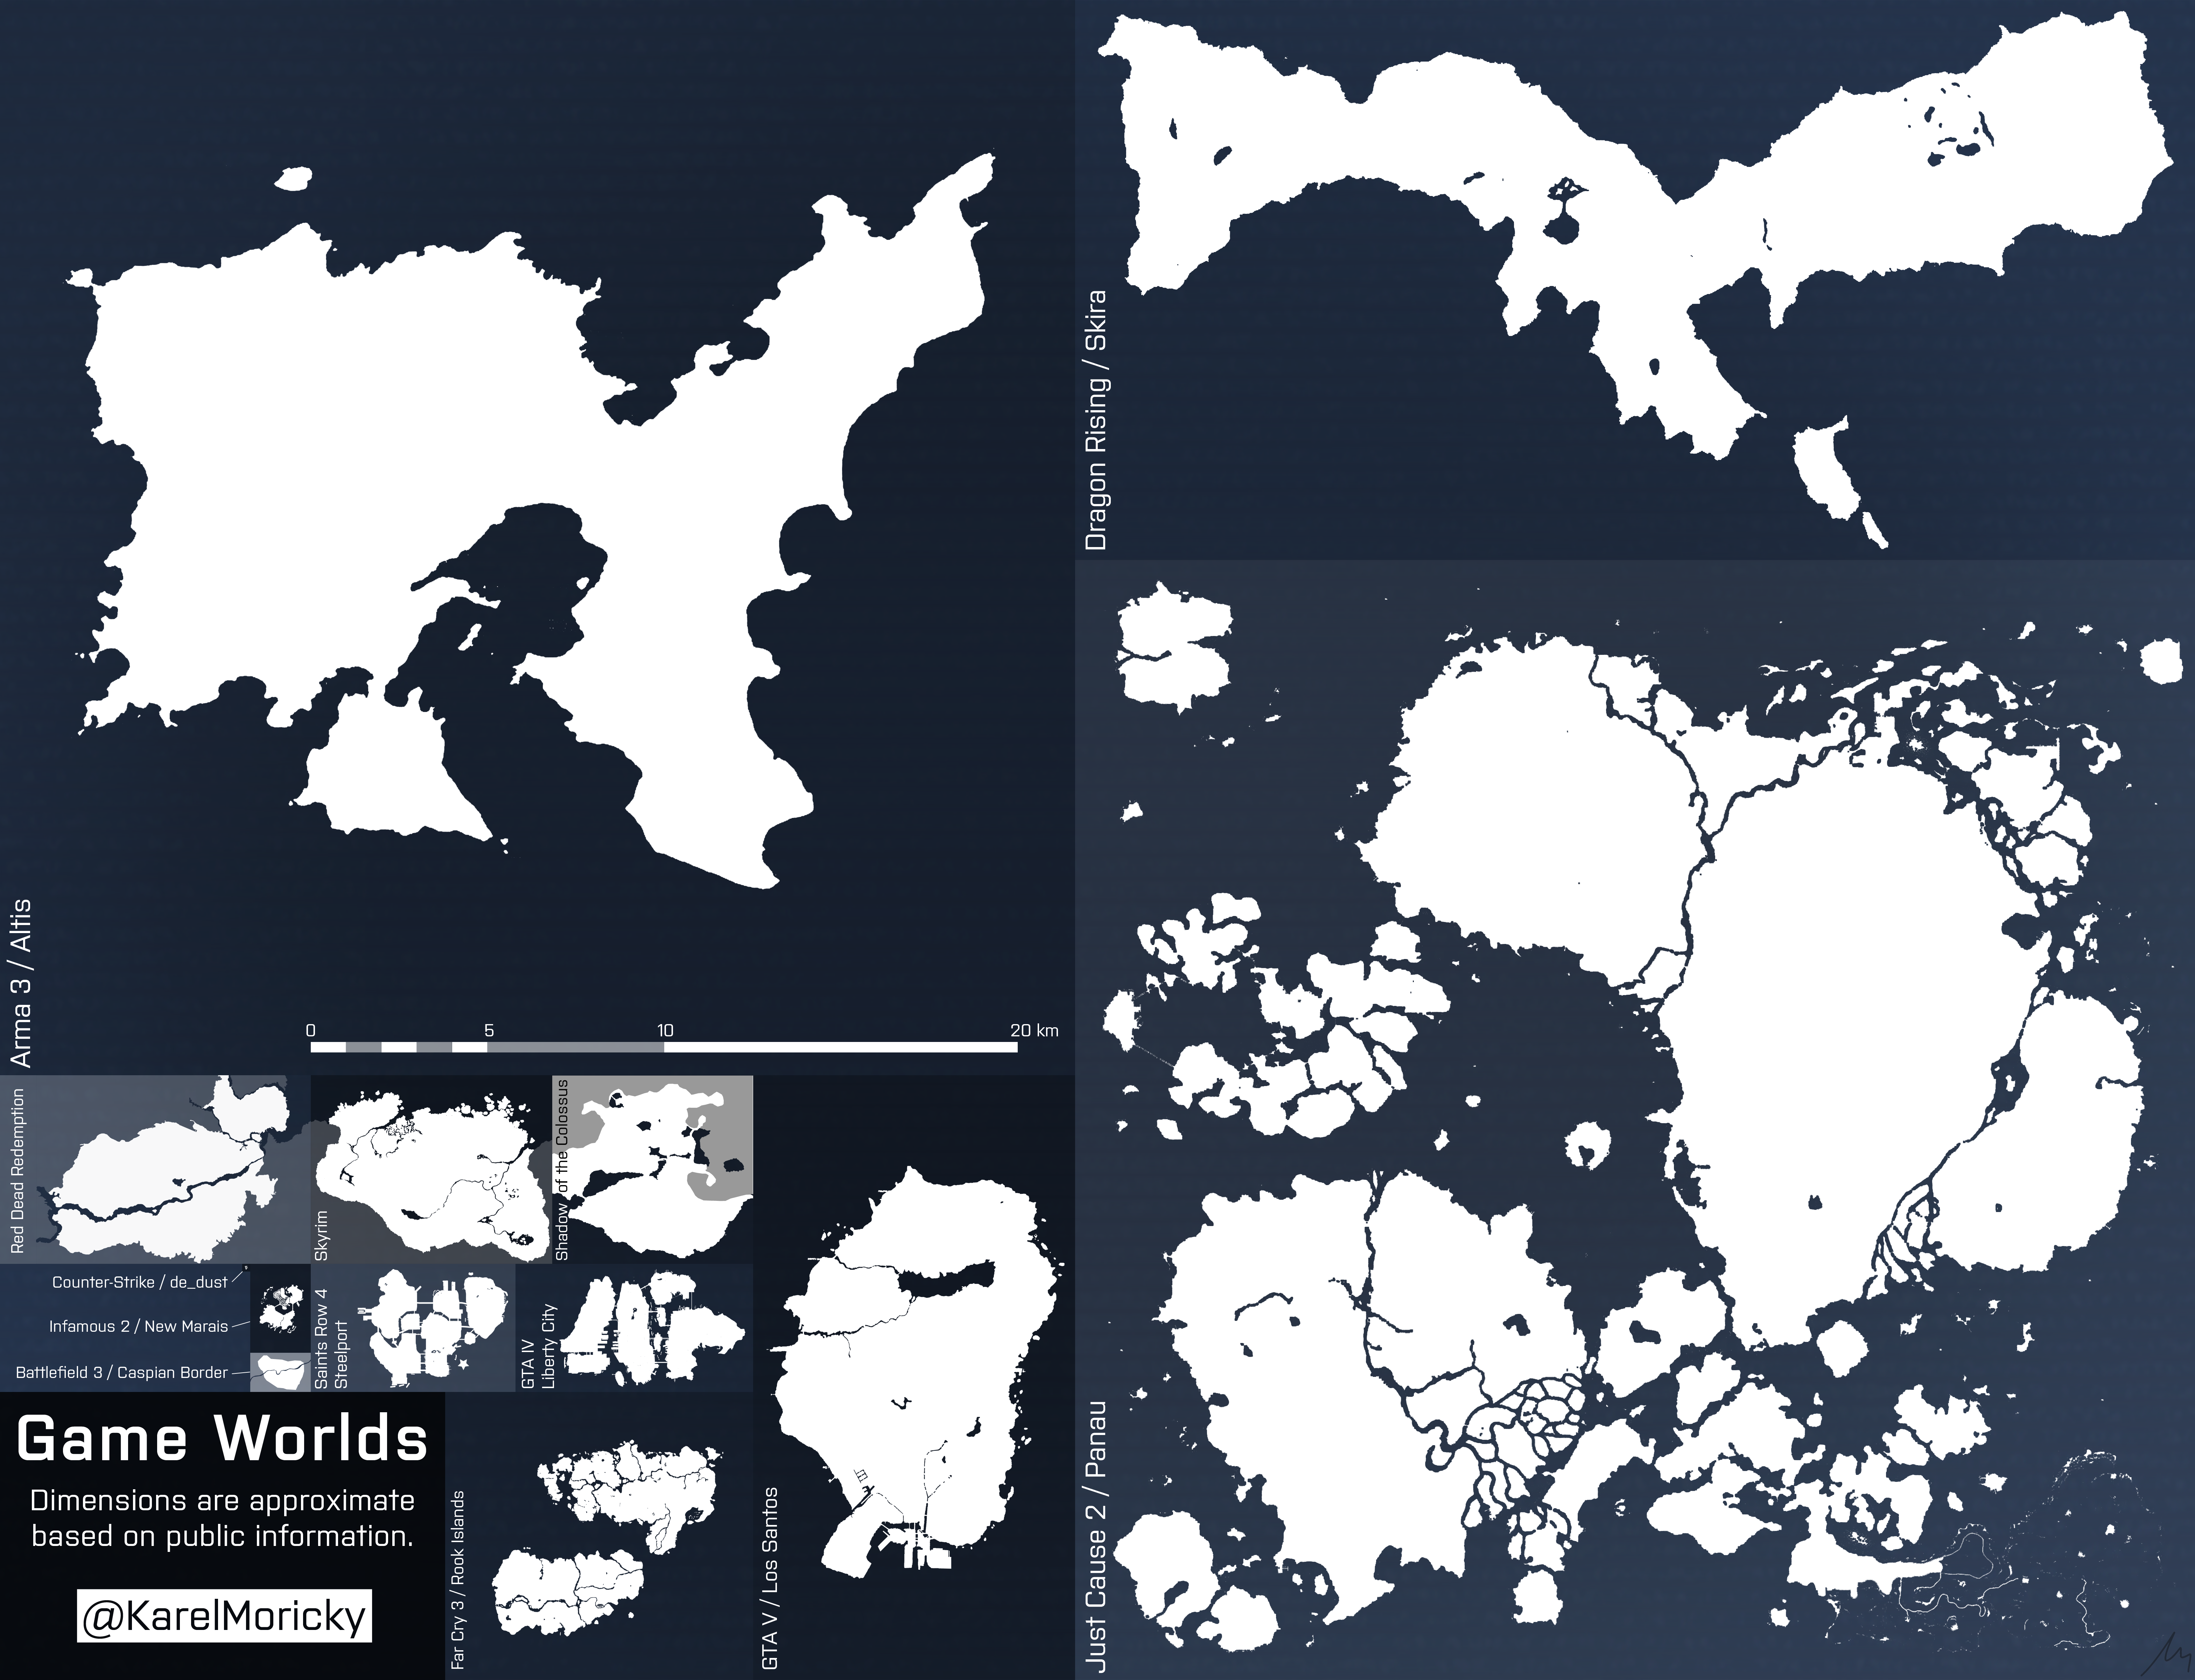 Video game terrains karel moick i updated the game worlds comparison image after numerous requests for just cause 2s panau island the recently leaked map of gta vs los santos gumiabroncs Gallery